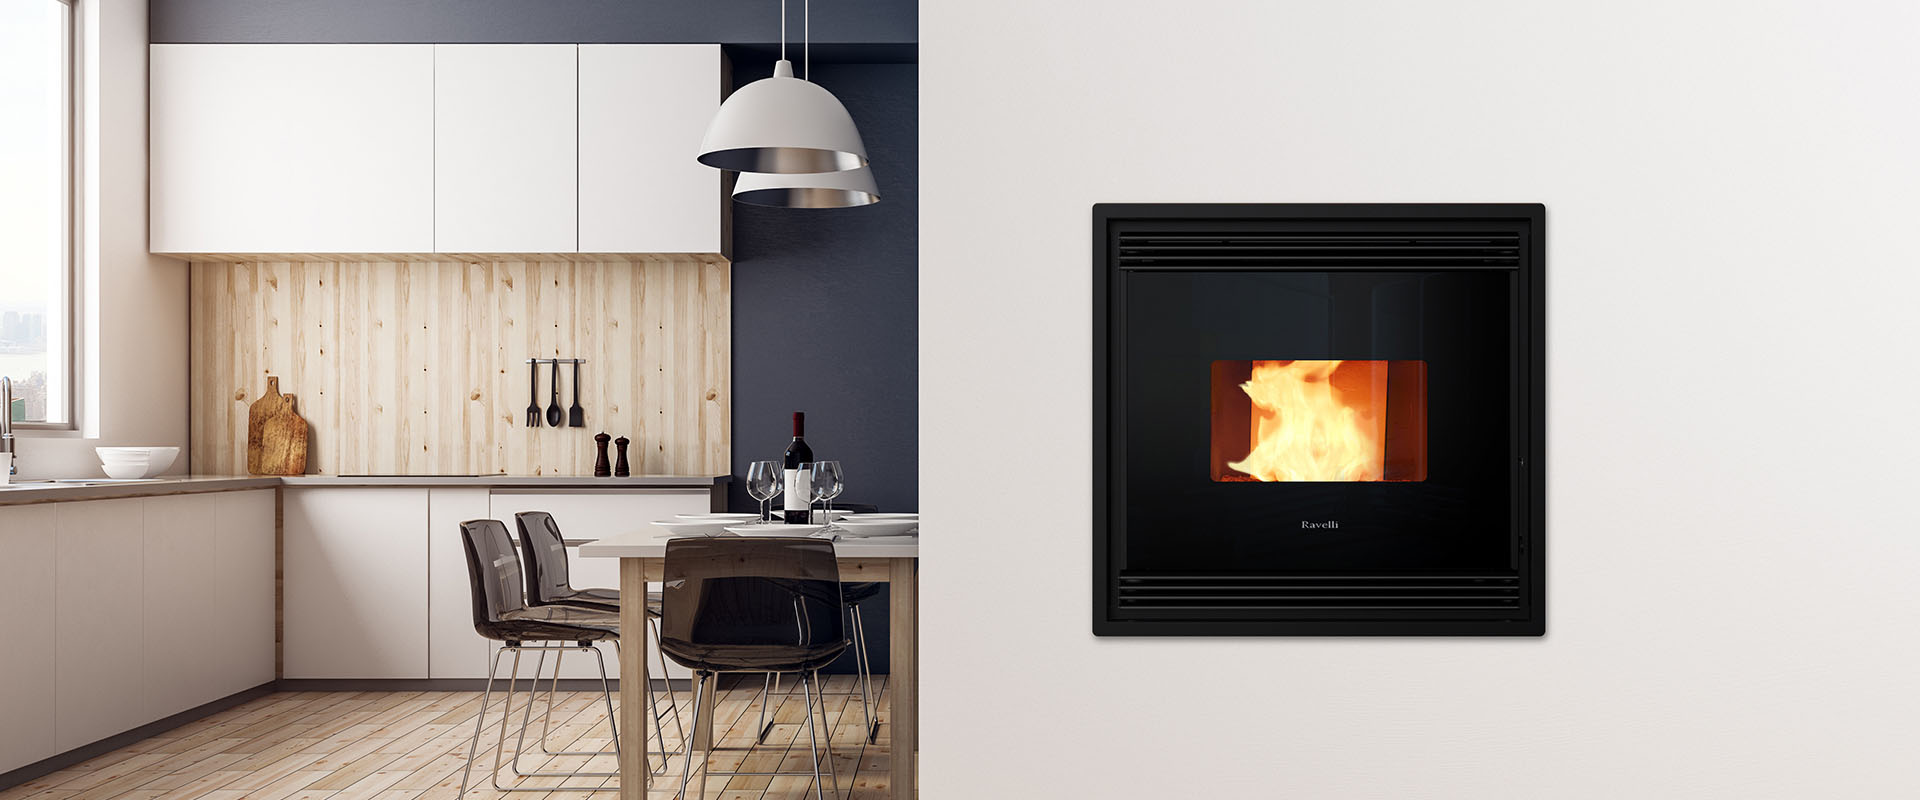 Smartheat - Air Pellet Stoves - Ravelli Air Pellet Stoves - Silence, the Perfect Stove - S90